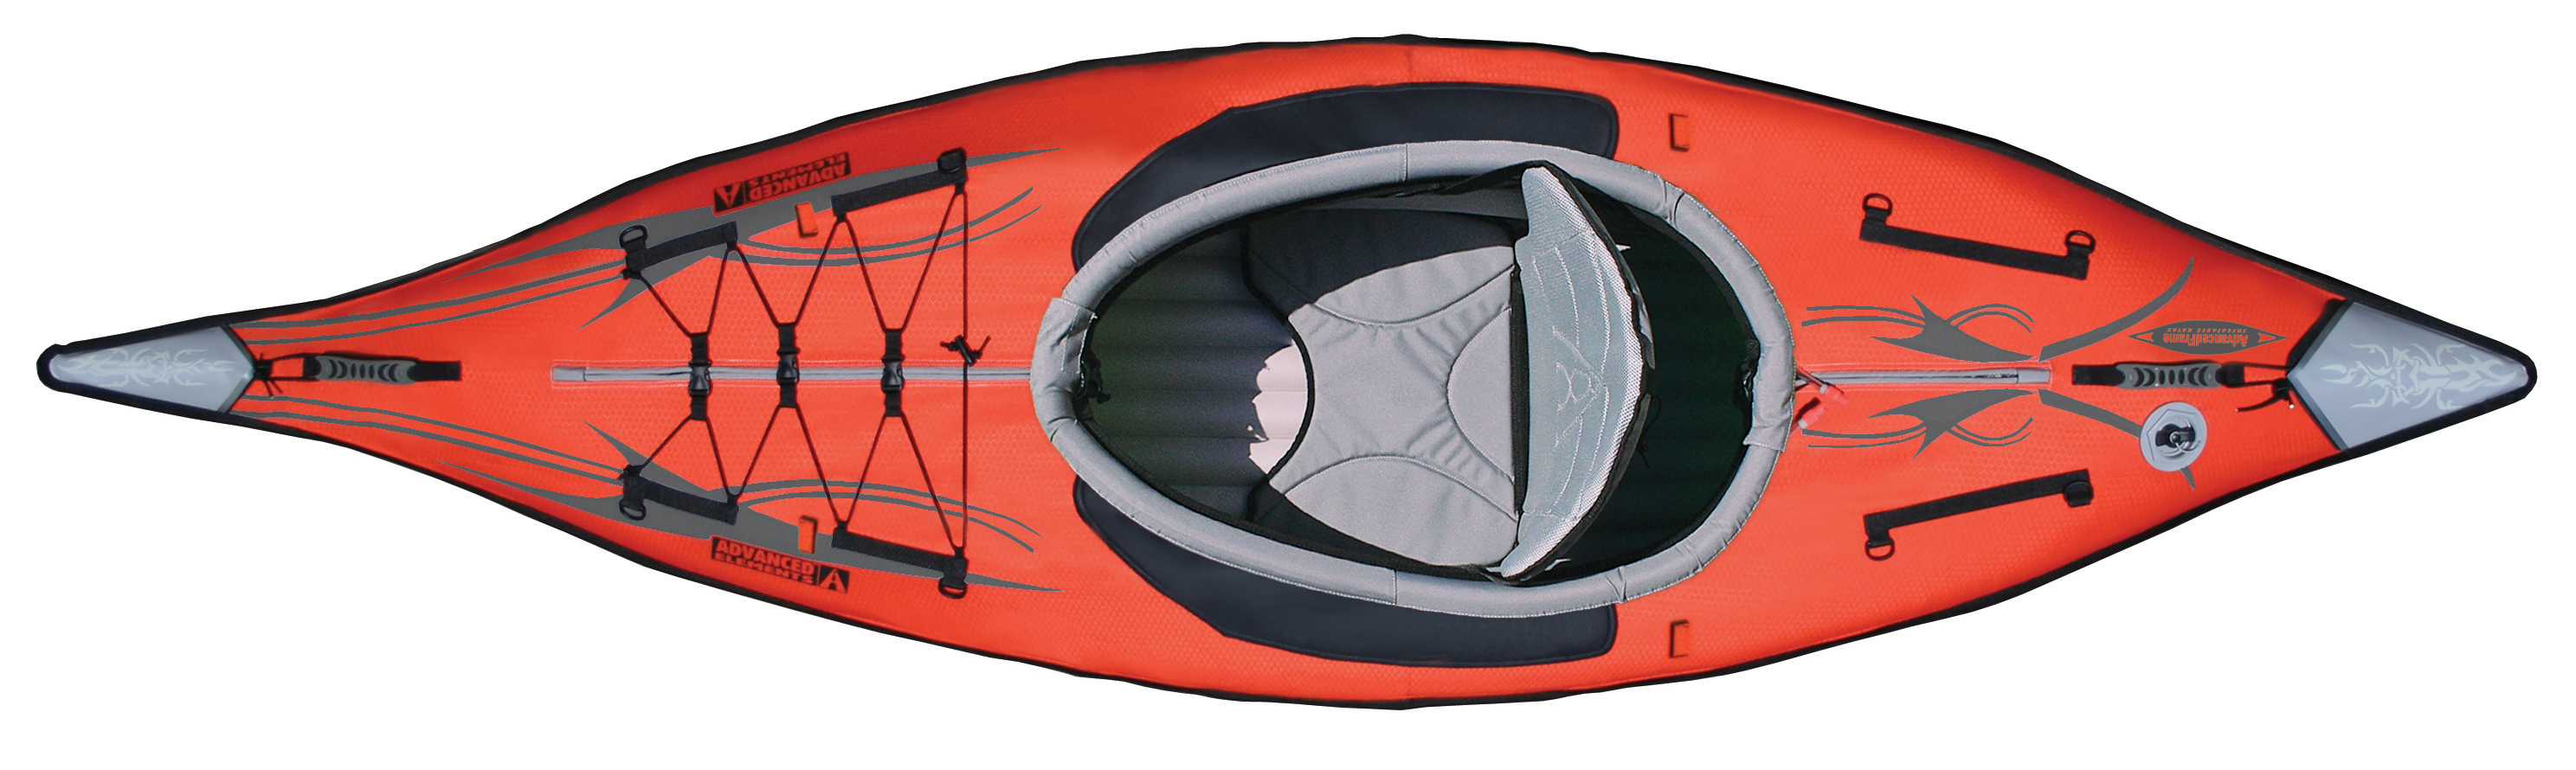 Kayaks: AdvancedFrame by Advanced Elements - Image 4493